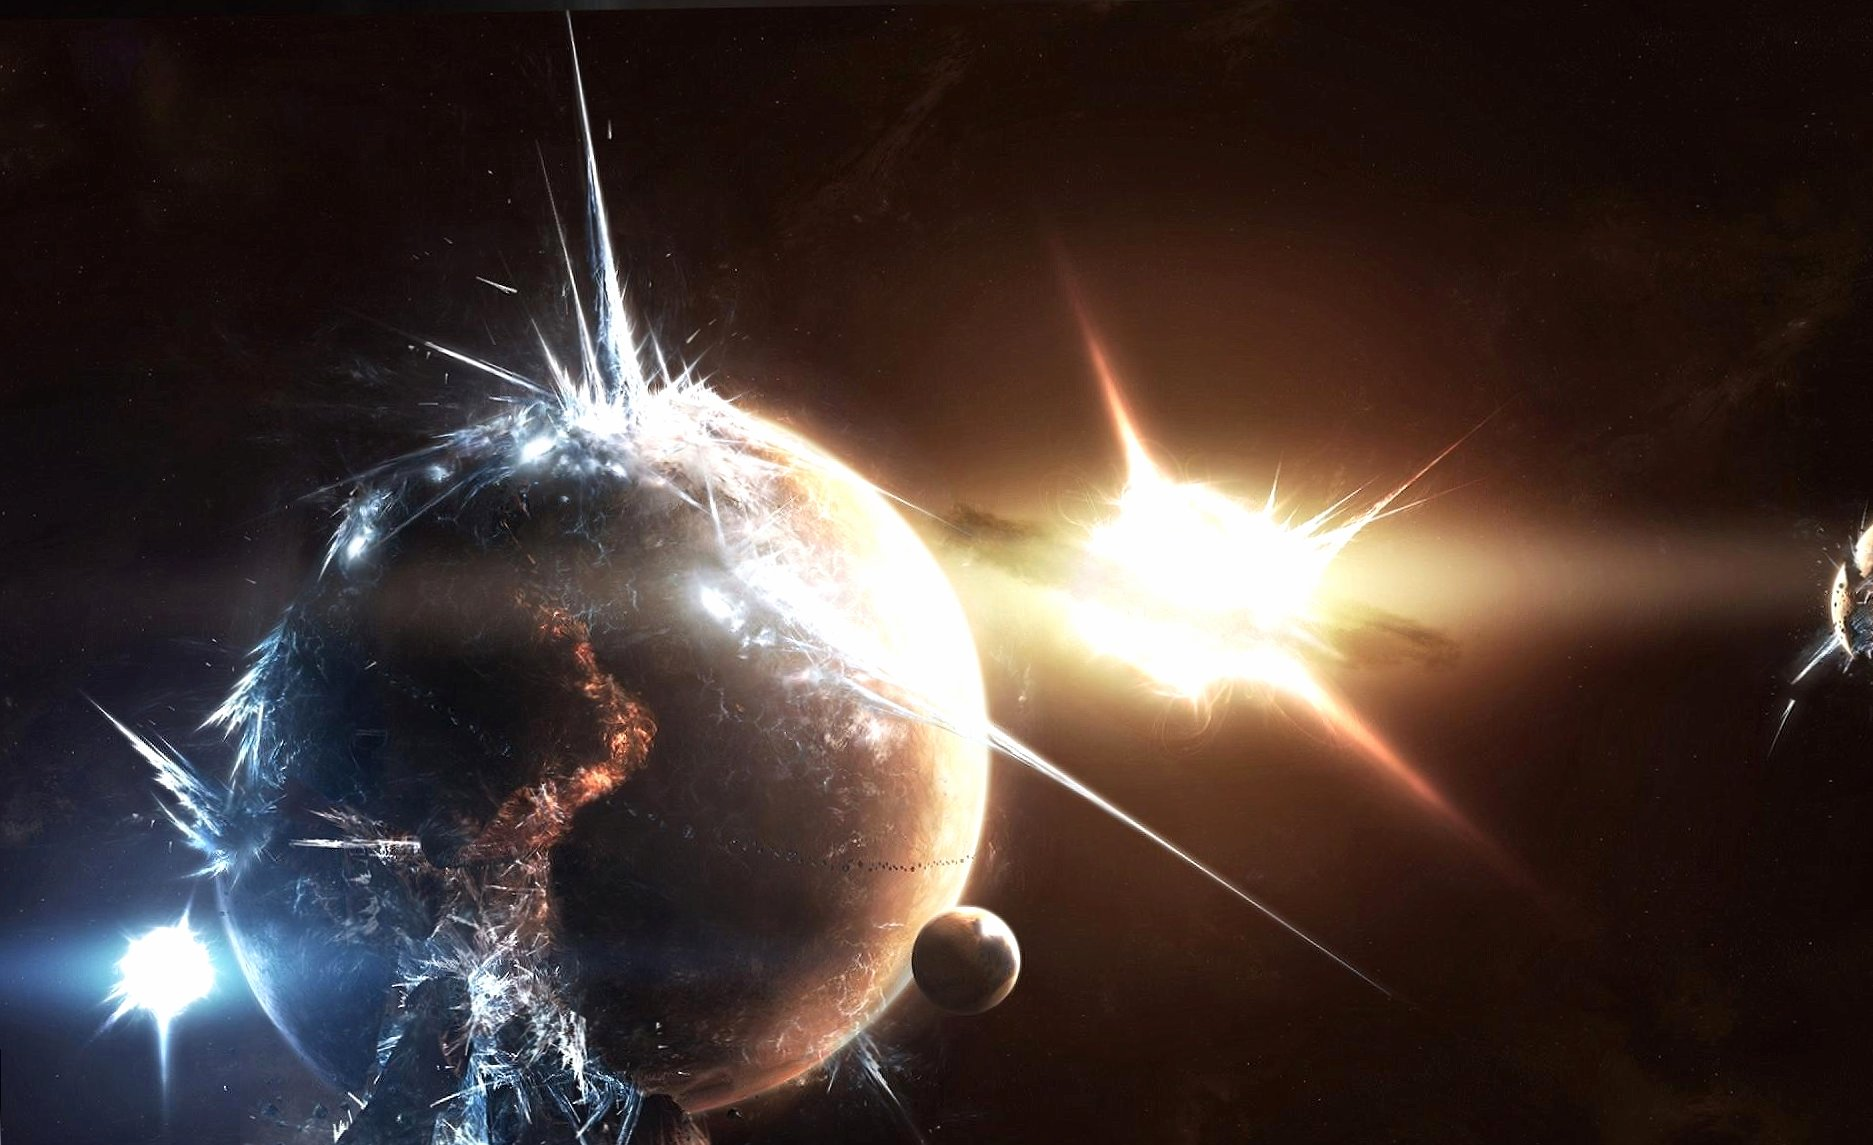 Catastrofic explosion of planet wallpapers HD quality